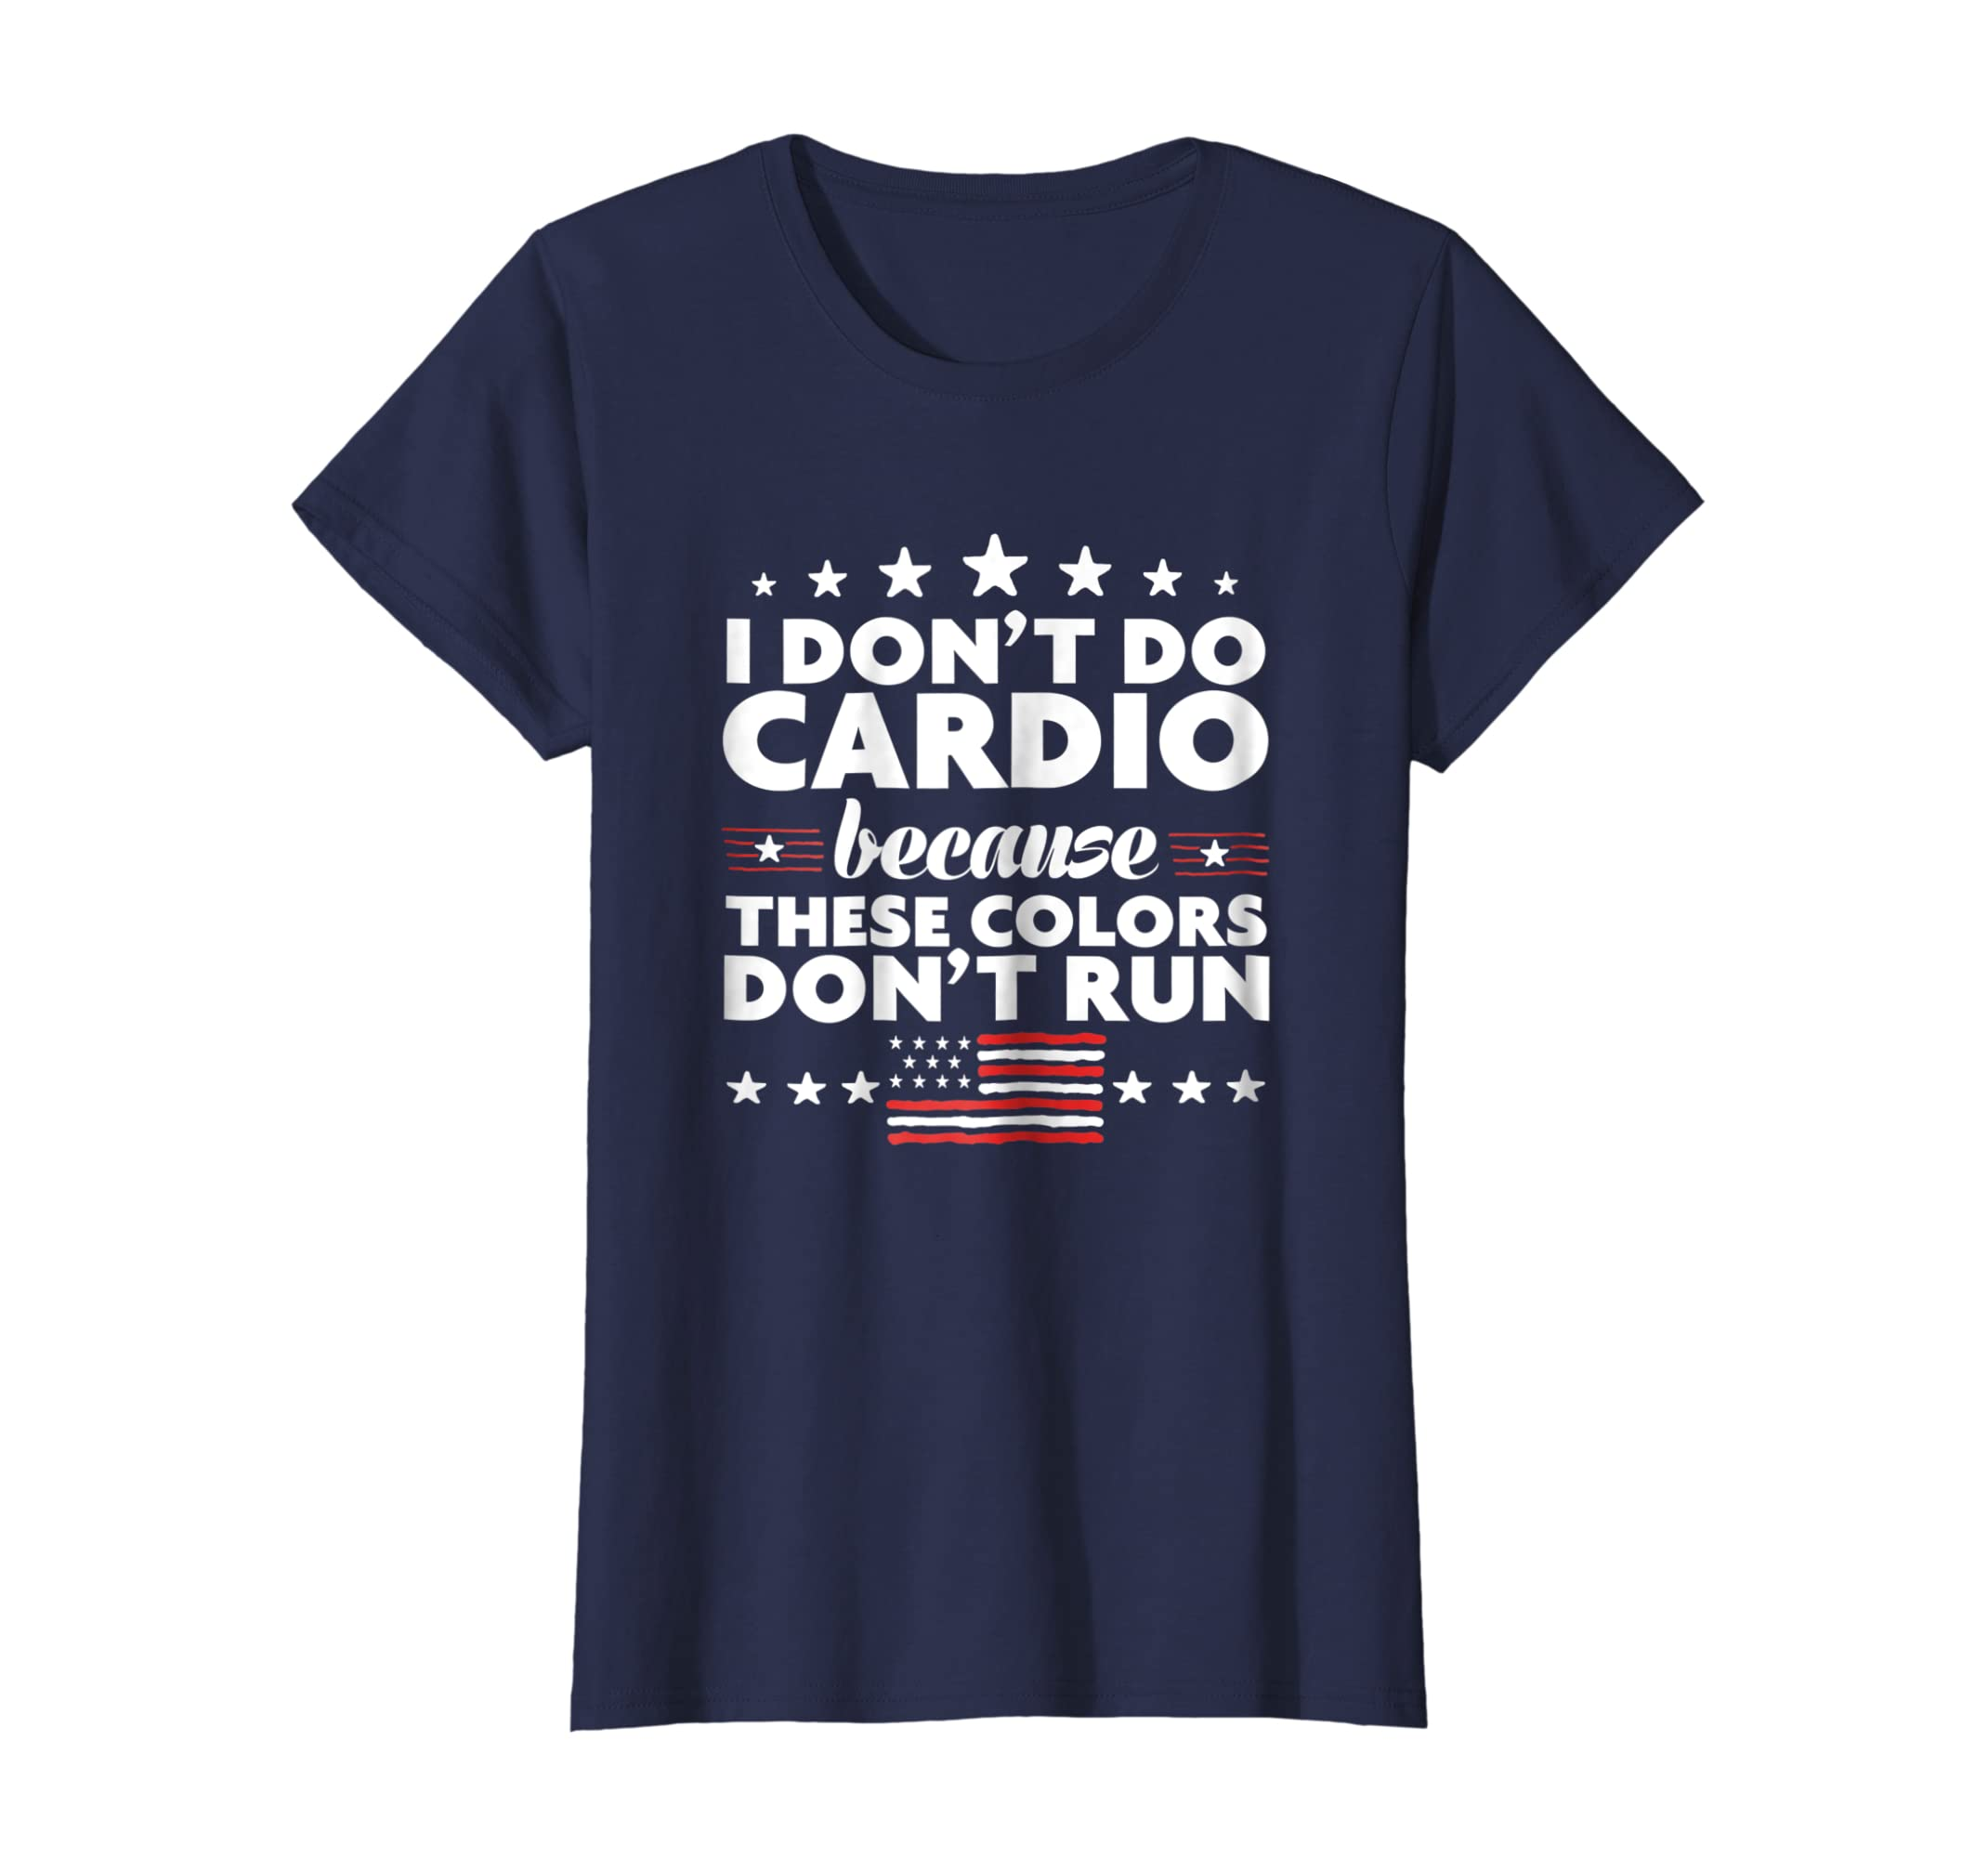 d87003579 Amazon.com: Funny 4th of July Shirts-I Don't Do Cardio for Men or Women:  Clothing